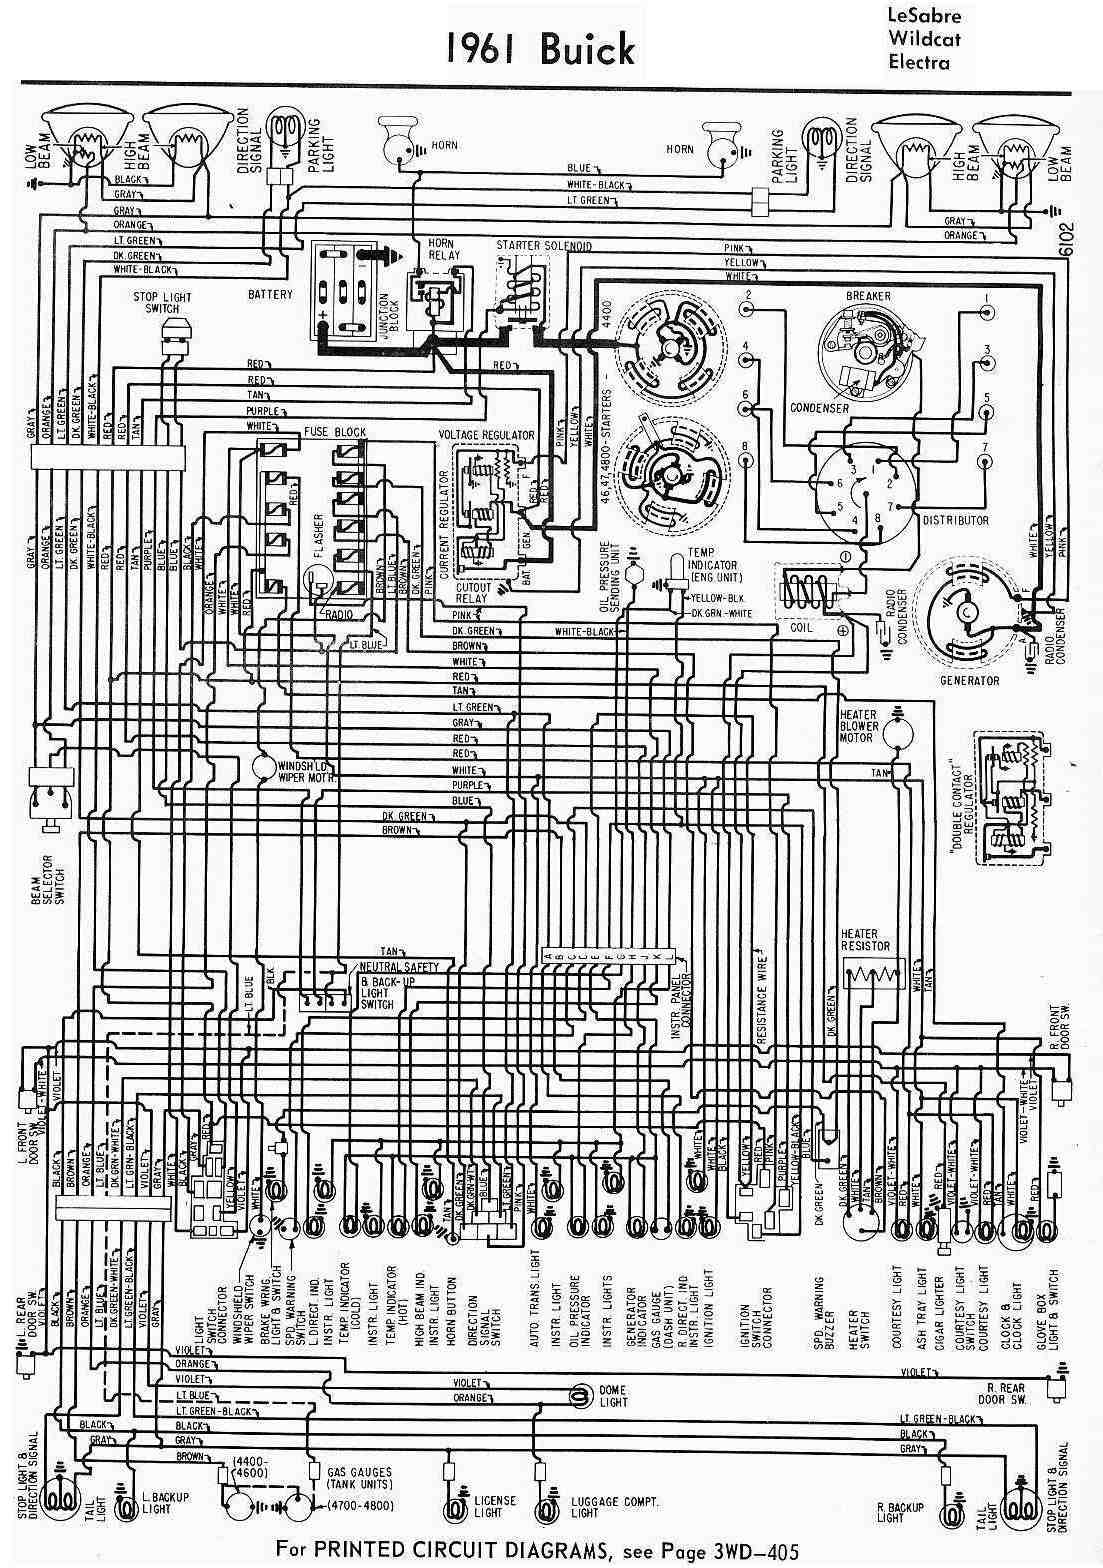 hight resolution of 97 buick lesabre wiring diagram wiring diagram db 1997 buick lesabre fuse diagram 1997 buick lesabre diagram